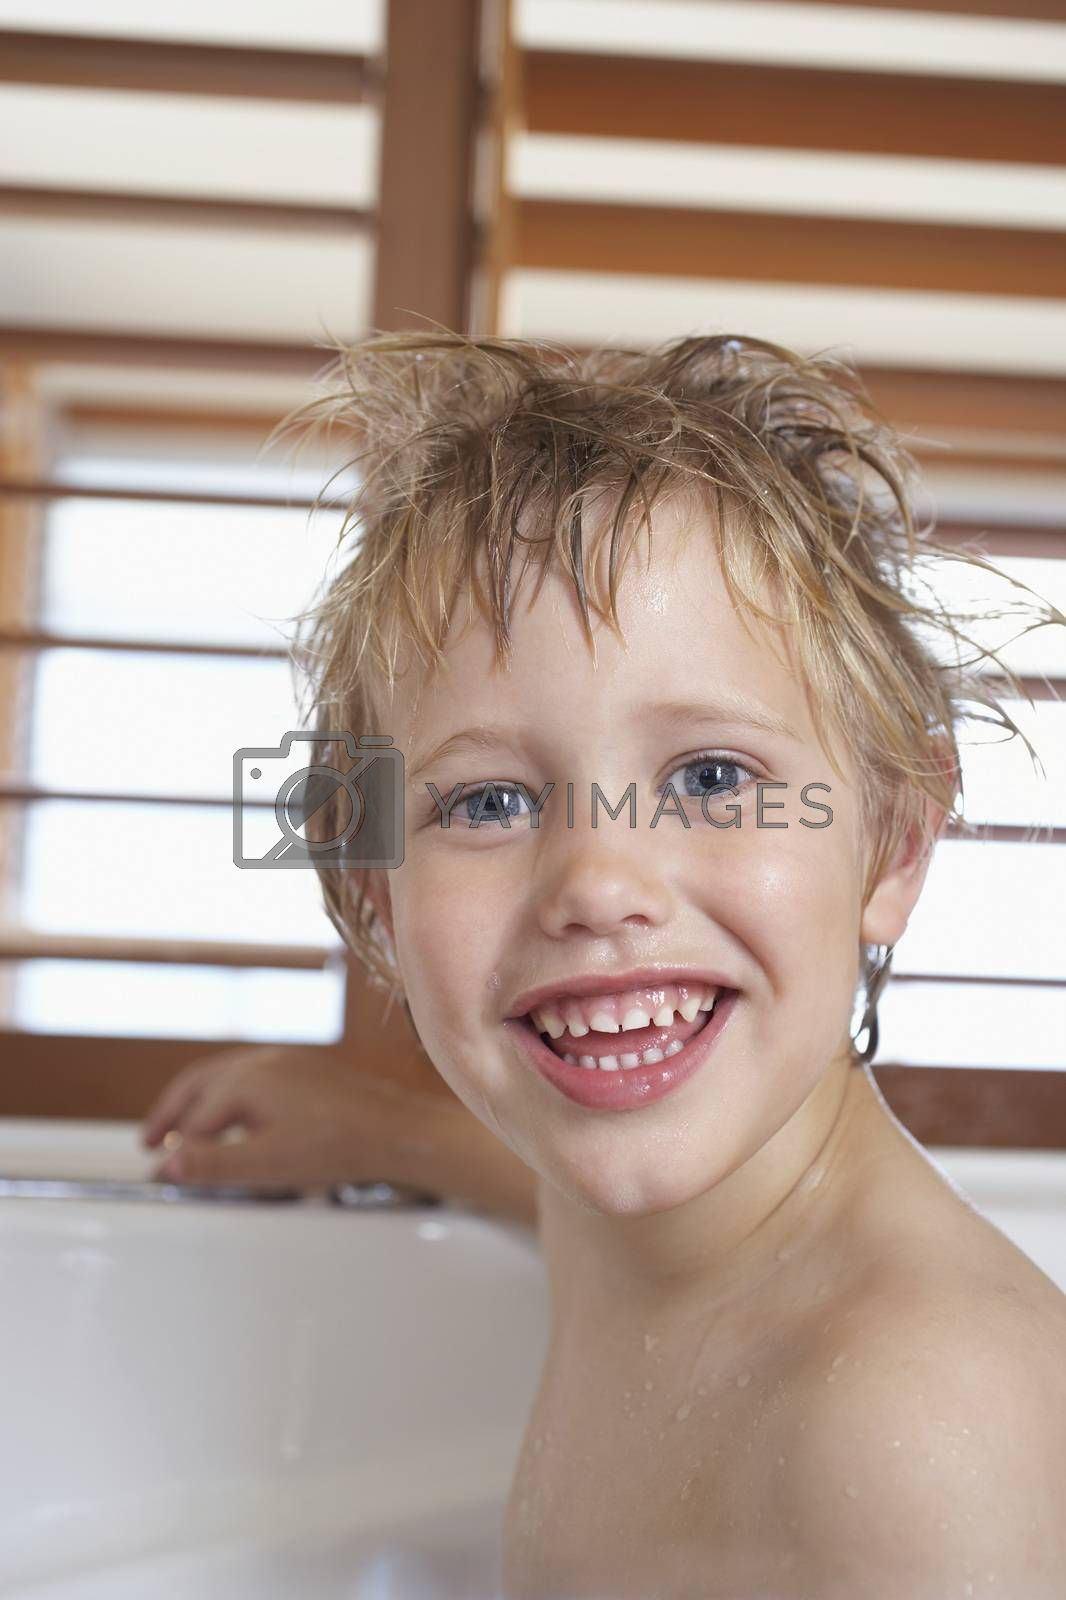 Royalty free image of Boy with messy wet hair in Bathtub close-up by moodboard